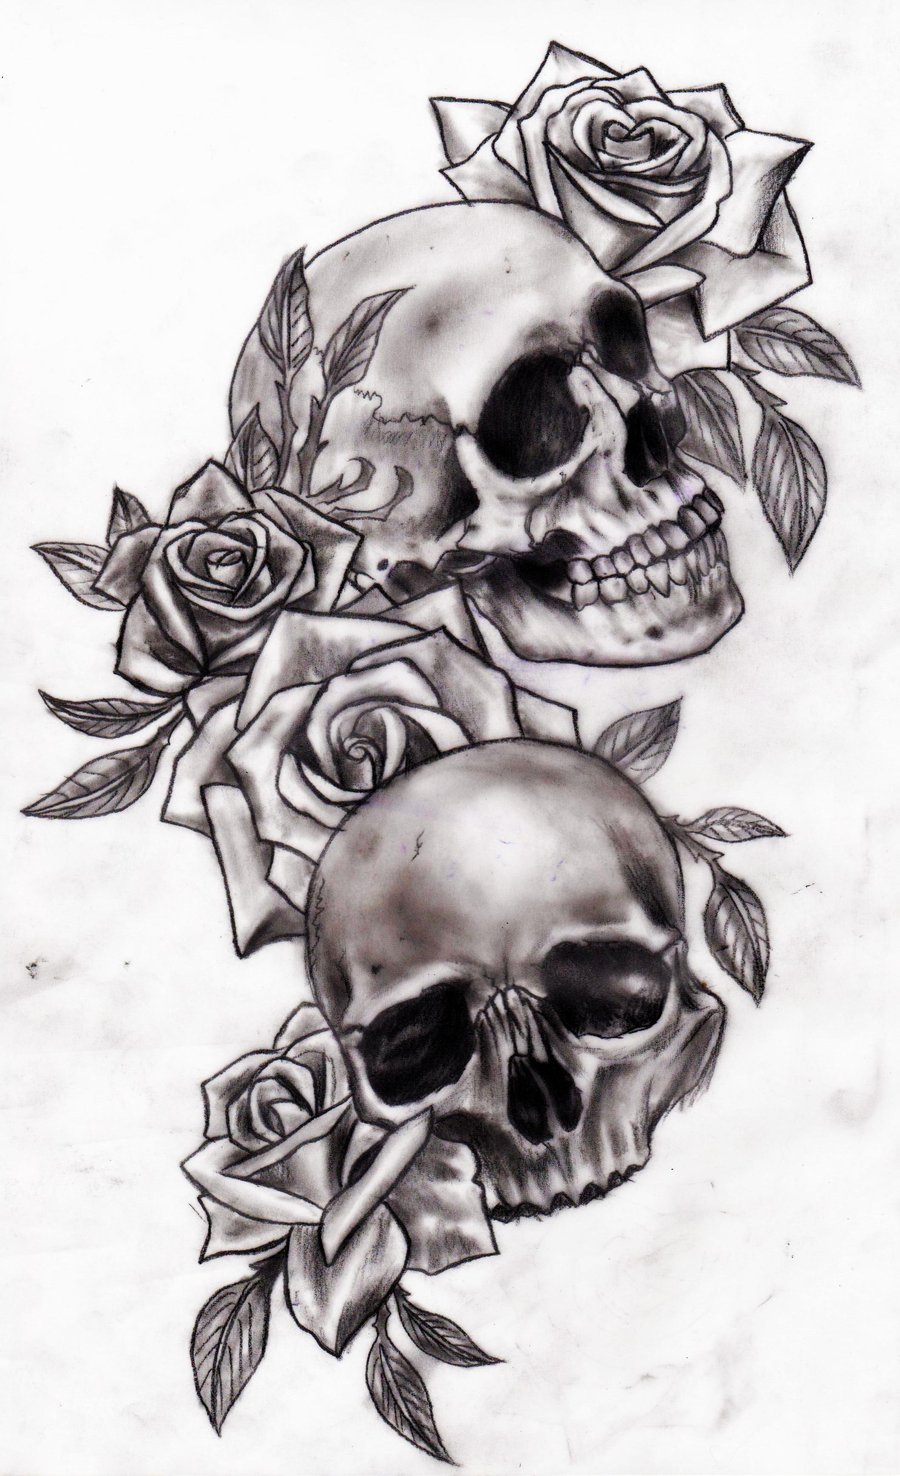 Candle Skull With Roses Tattoo On Arm photo - 1